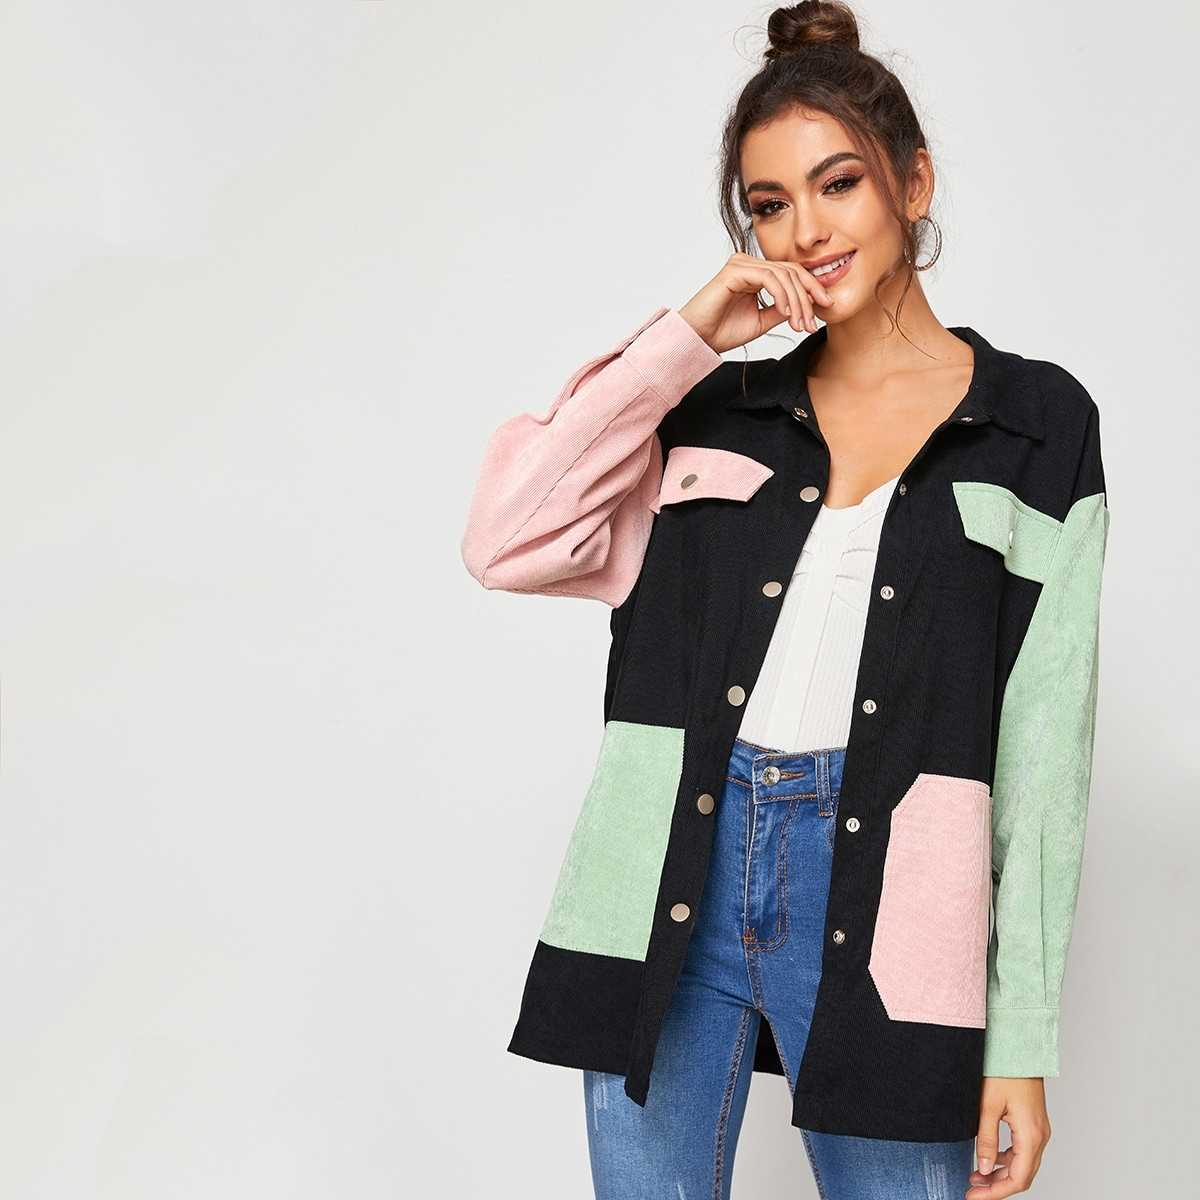 Pocket Side Button Up Colorblock Cord Coat in Multicolor by ROMWE on GOOFASH